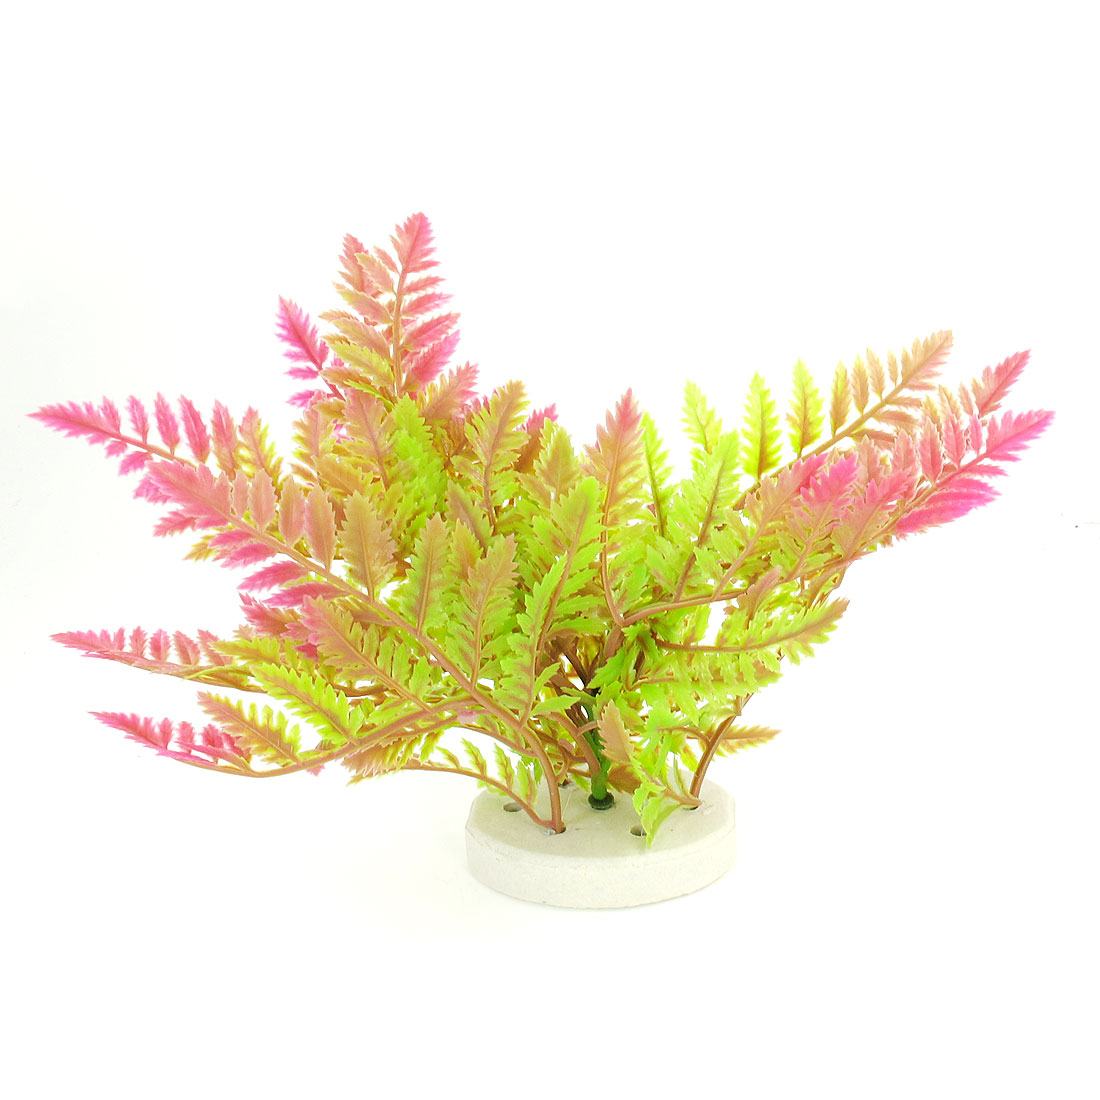 2 Pcs Aquarium Decor Plastic Underwater Plant Green Fuchsia w Ceramic Base